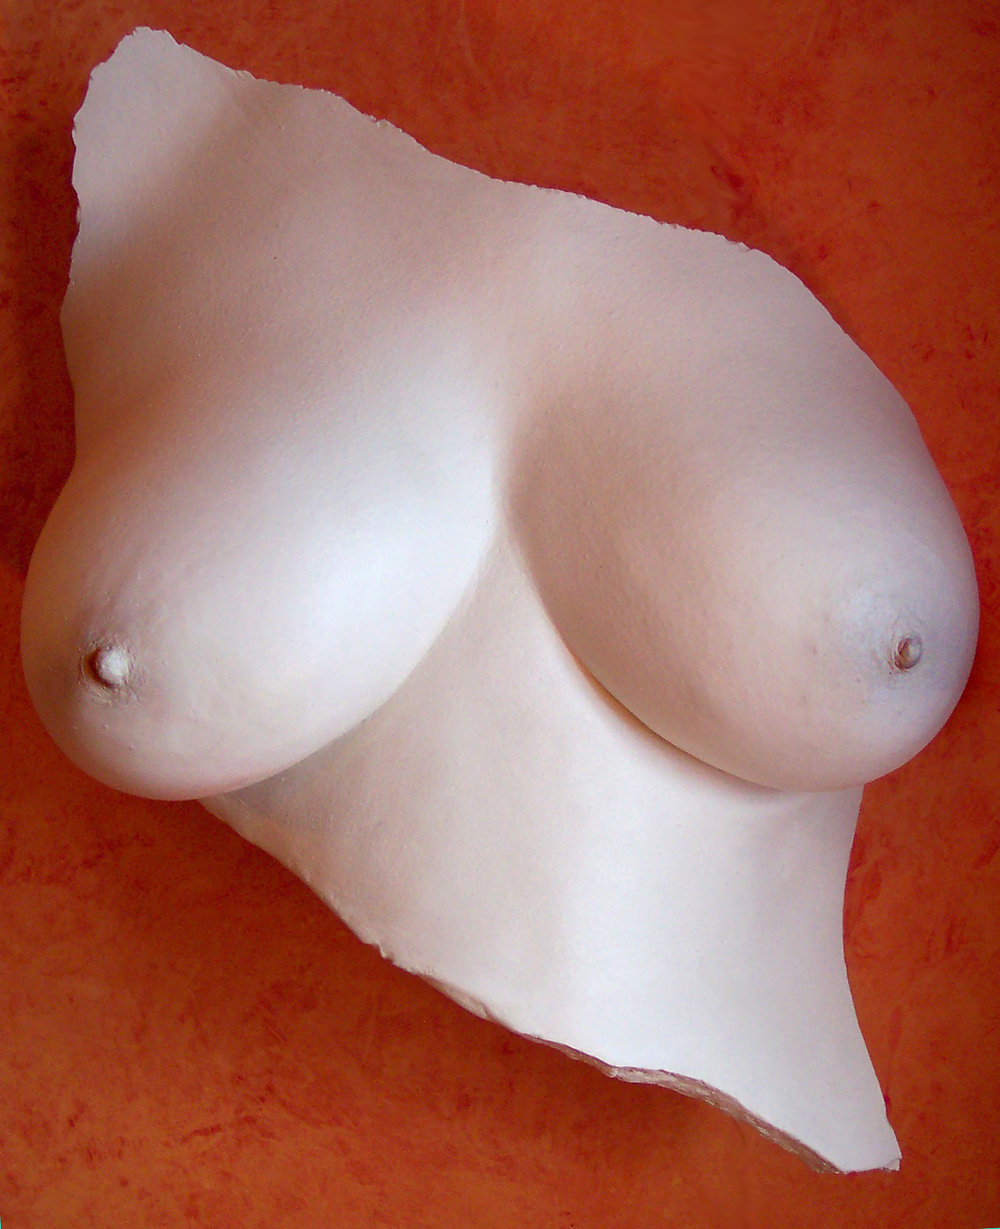 plain breasts 2.jpg